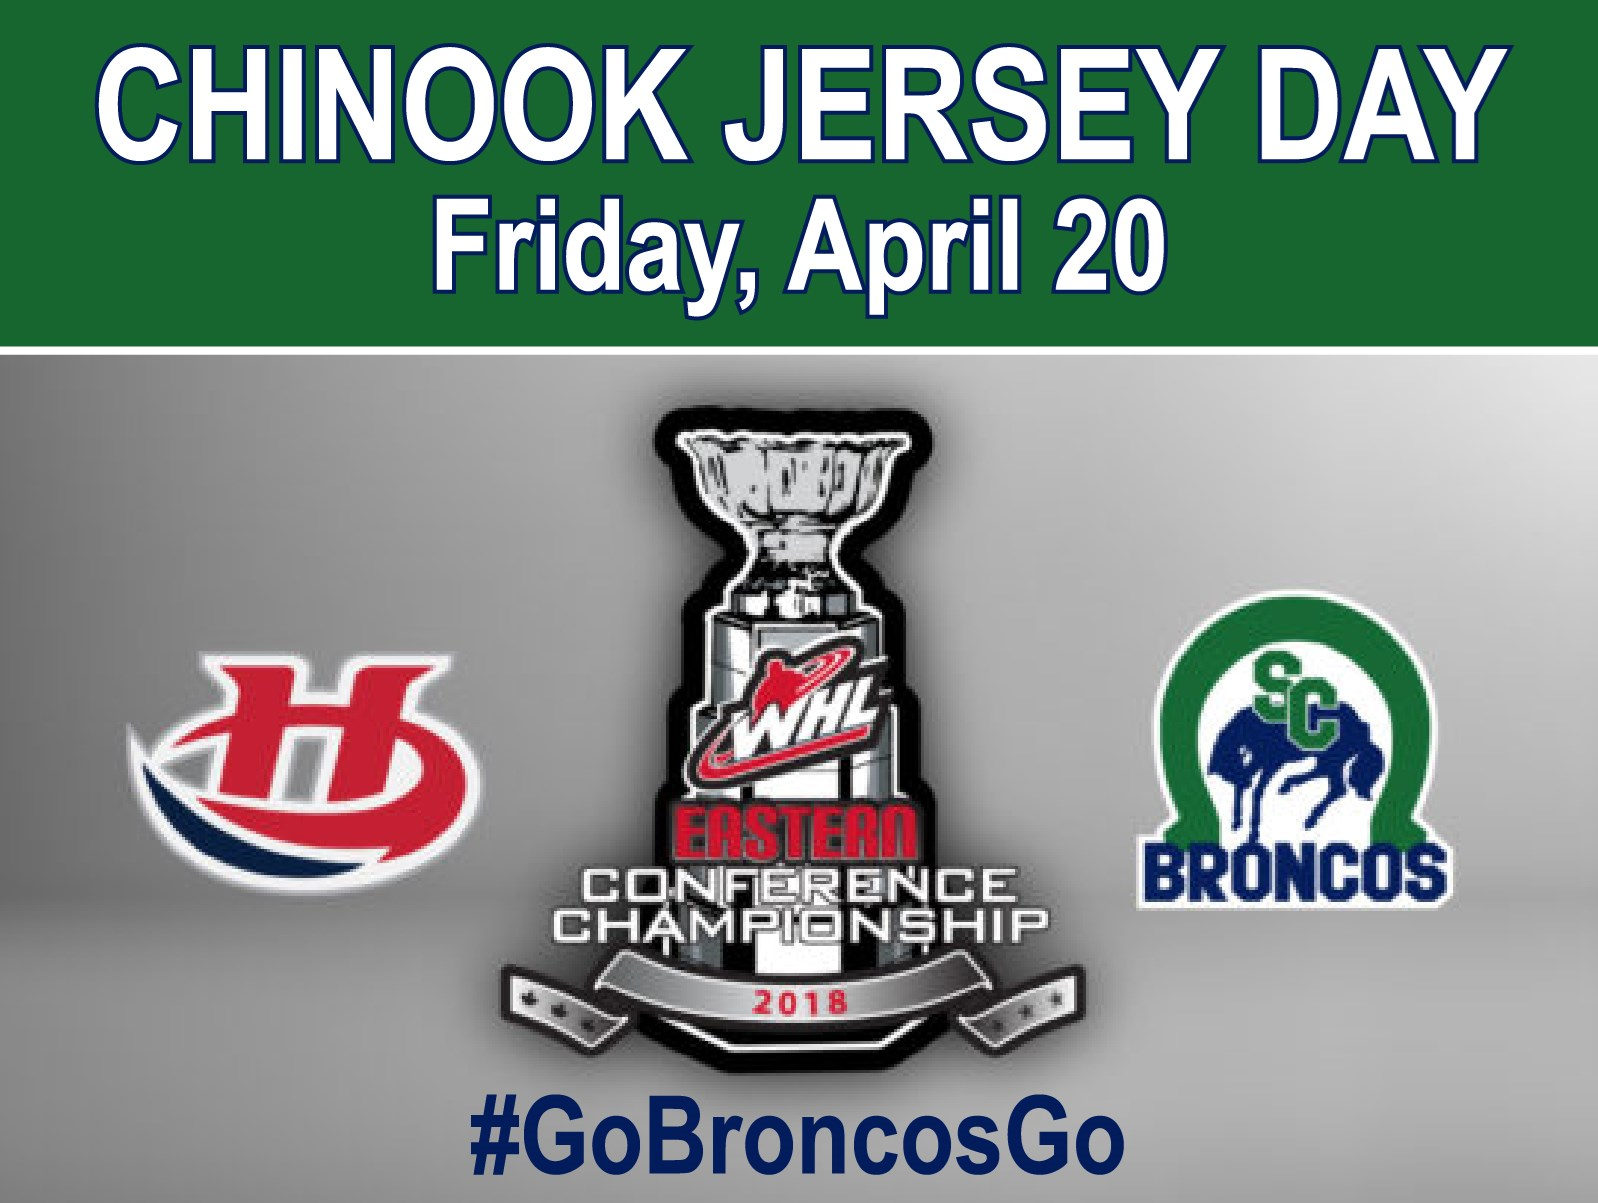 ChinookJerseyDay Apr 20.jpg